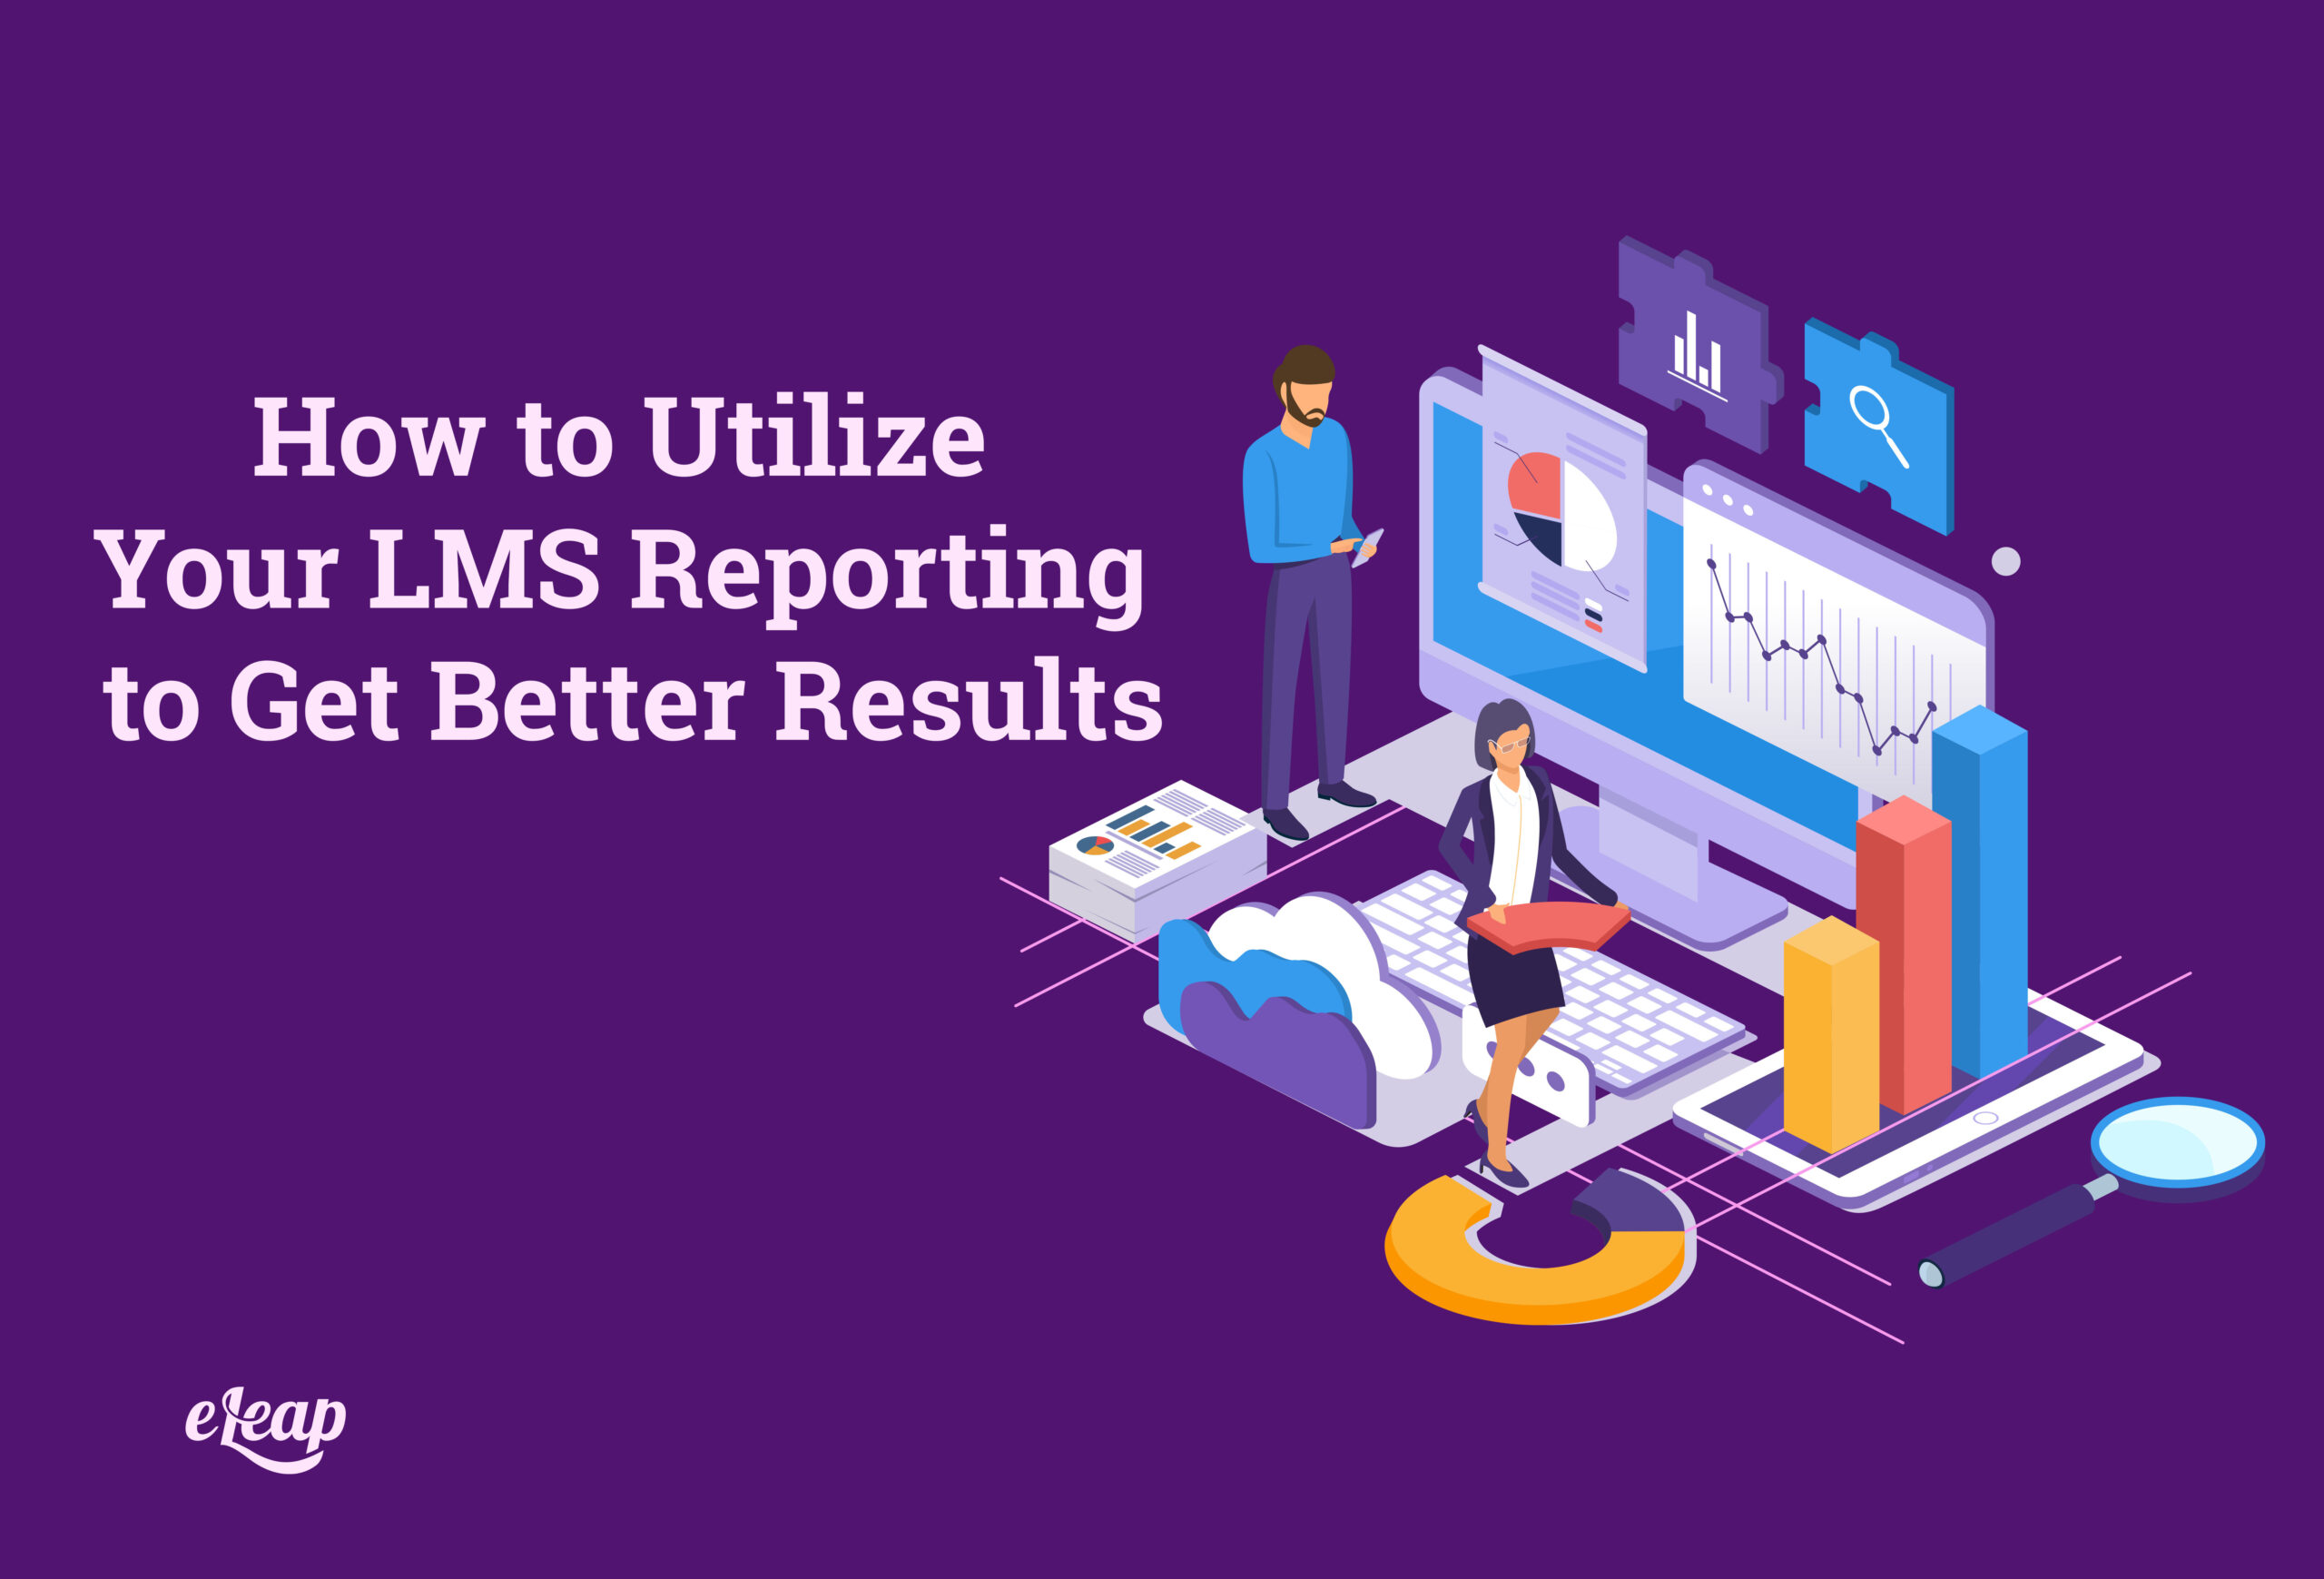 How to Utilize Your LMS Reporting to Get Better Results